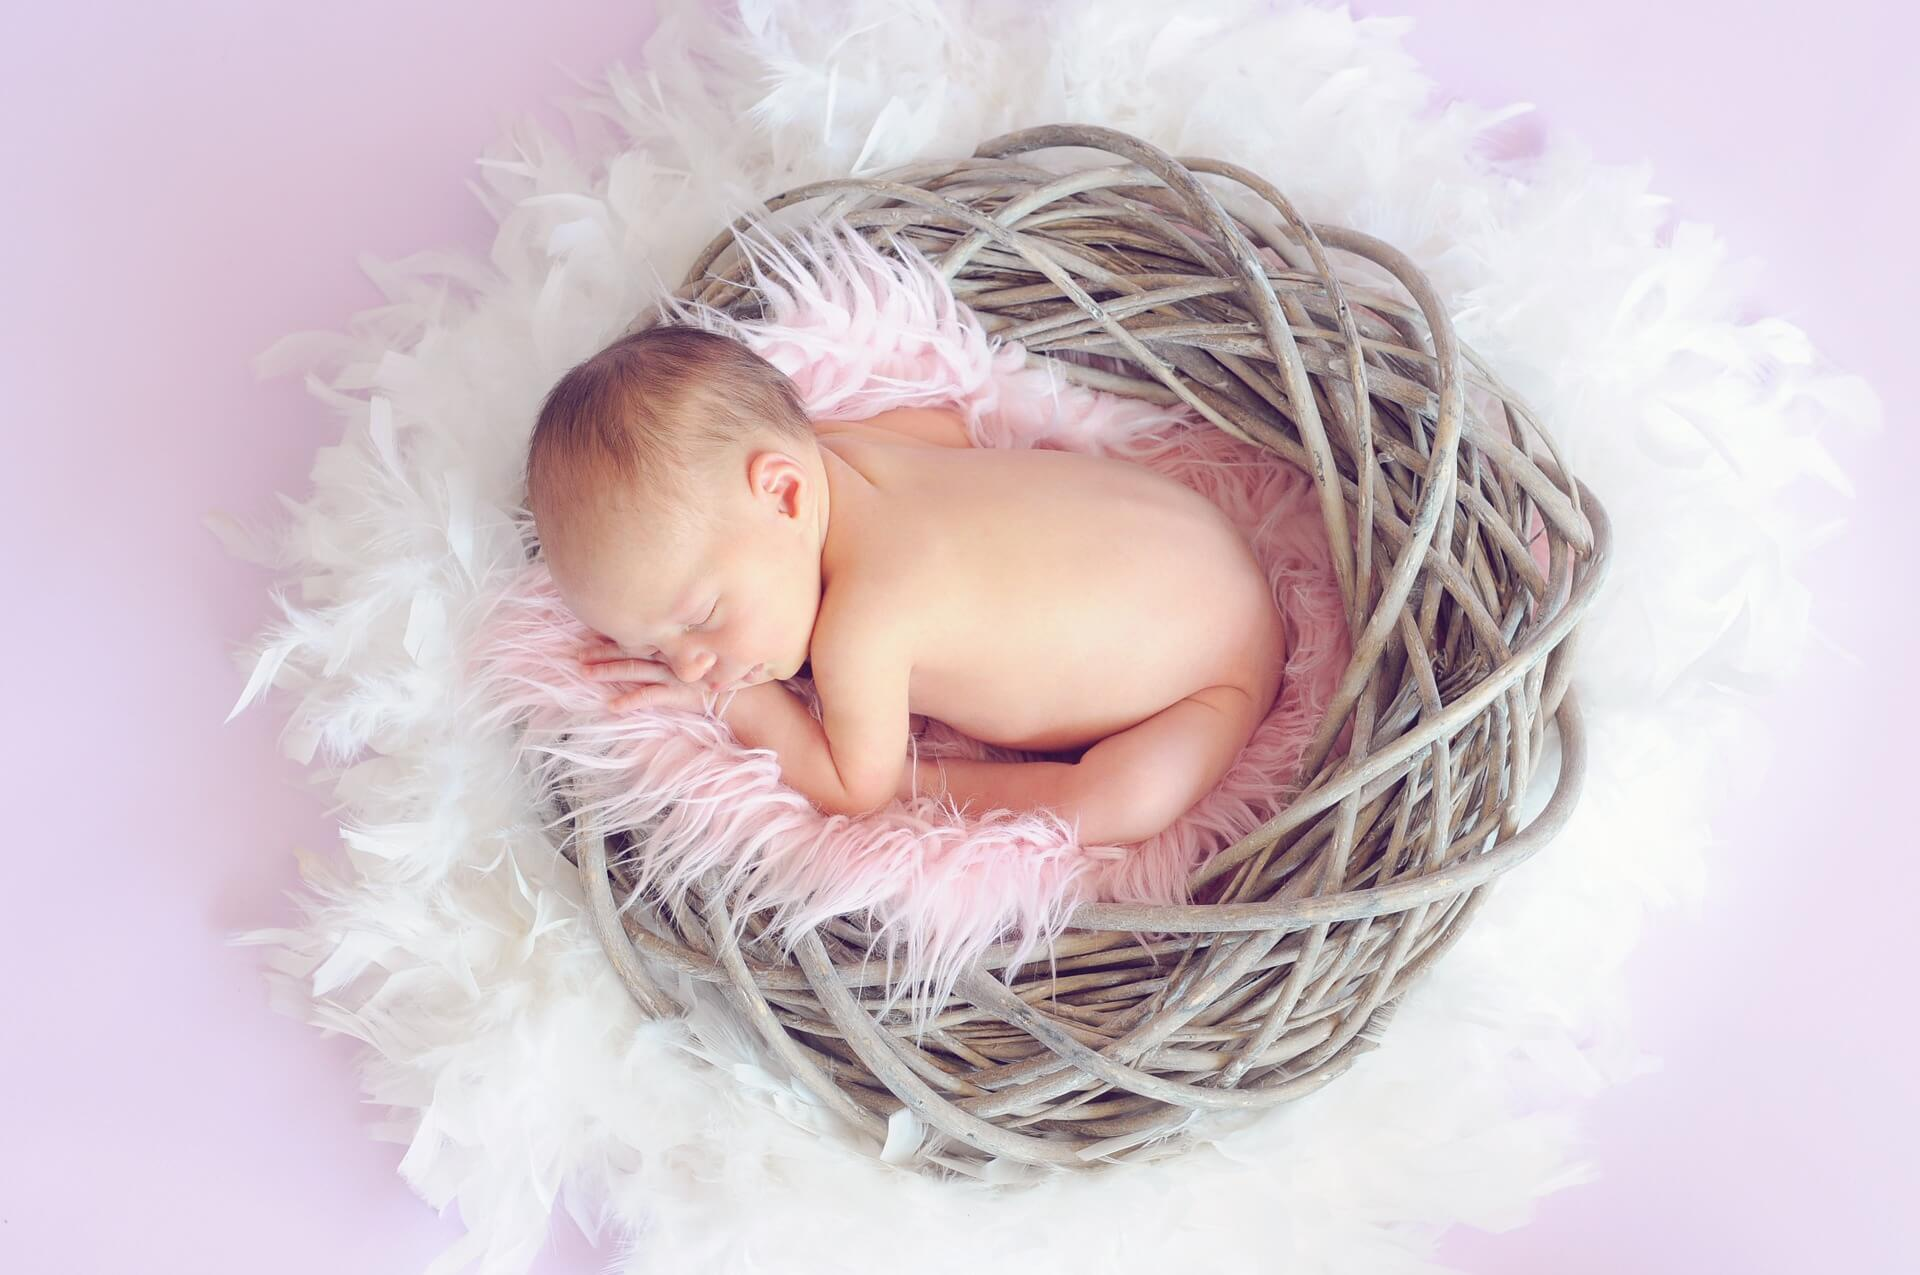 10 Best Gifts for New Baby - Photographer Session